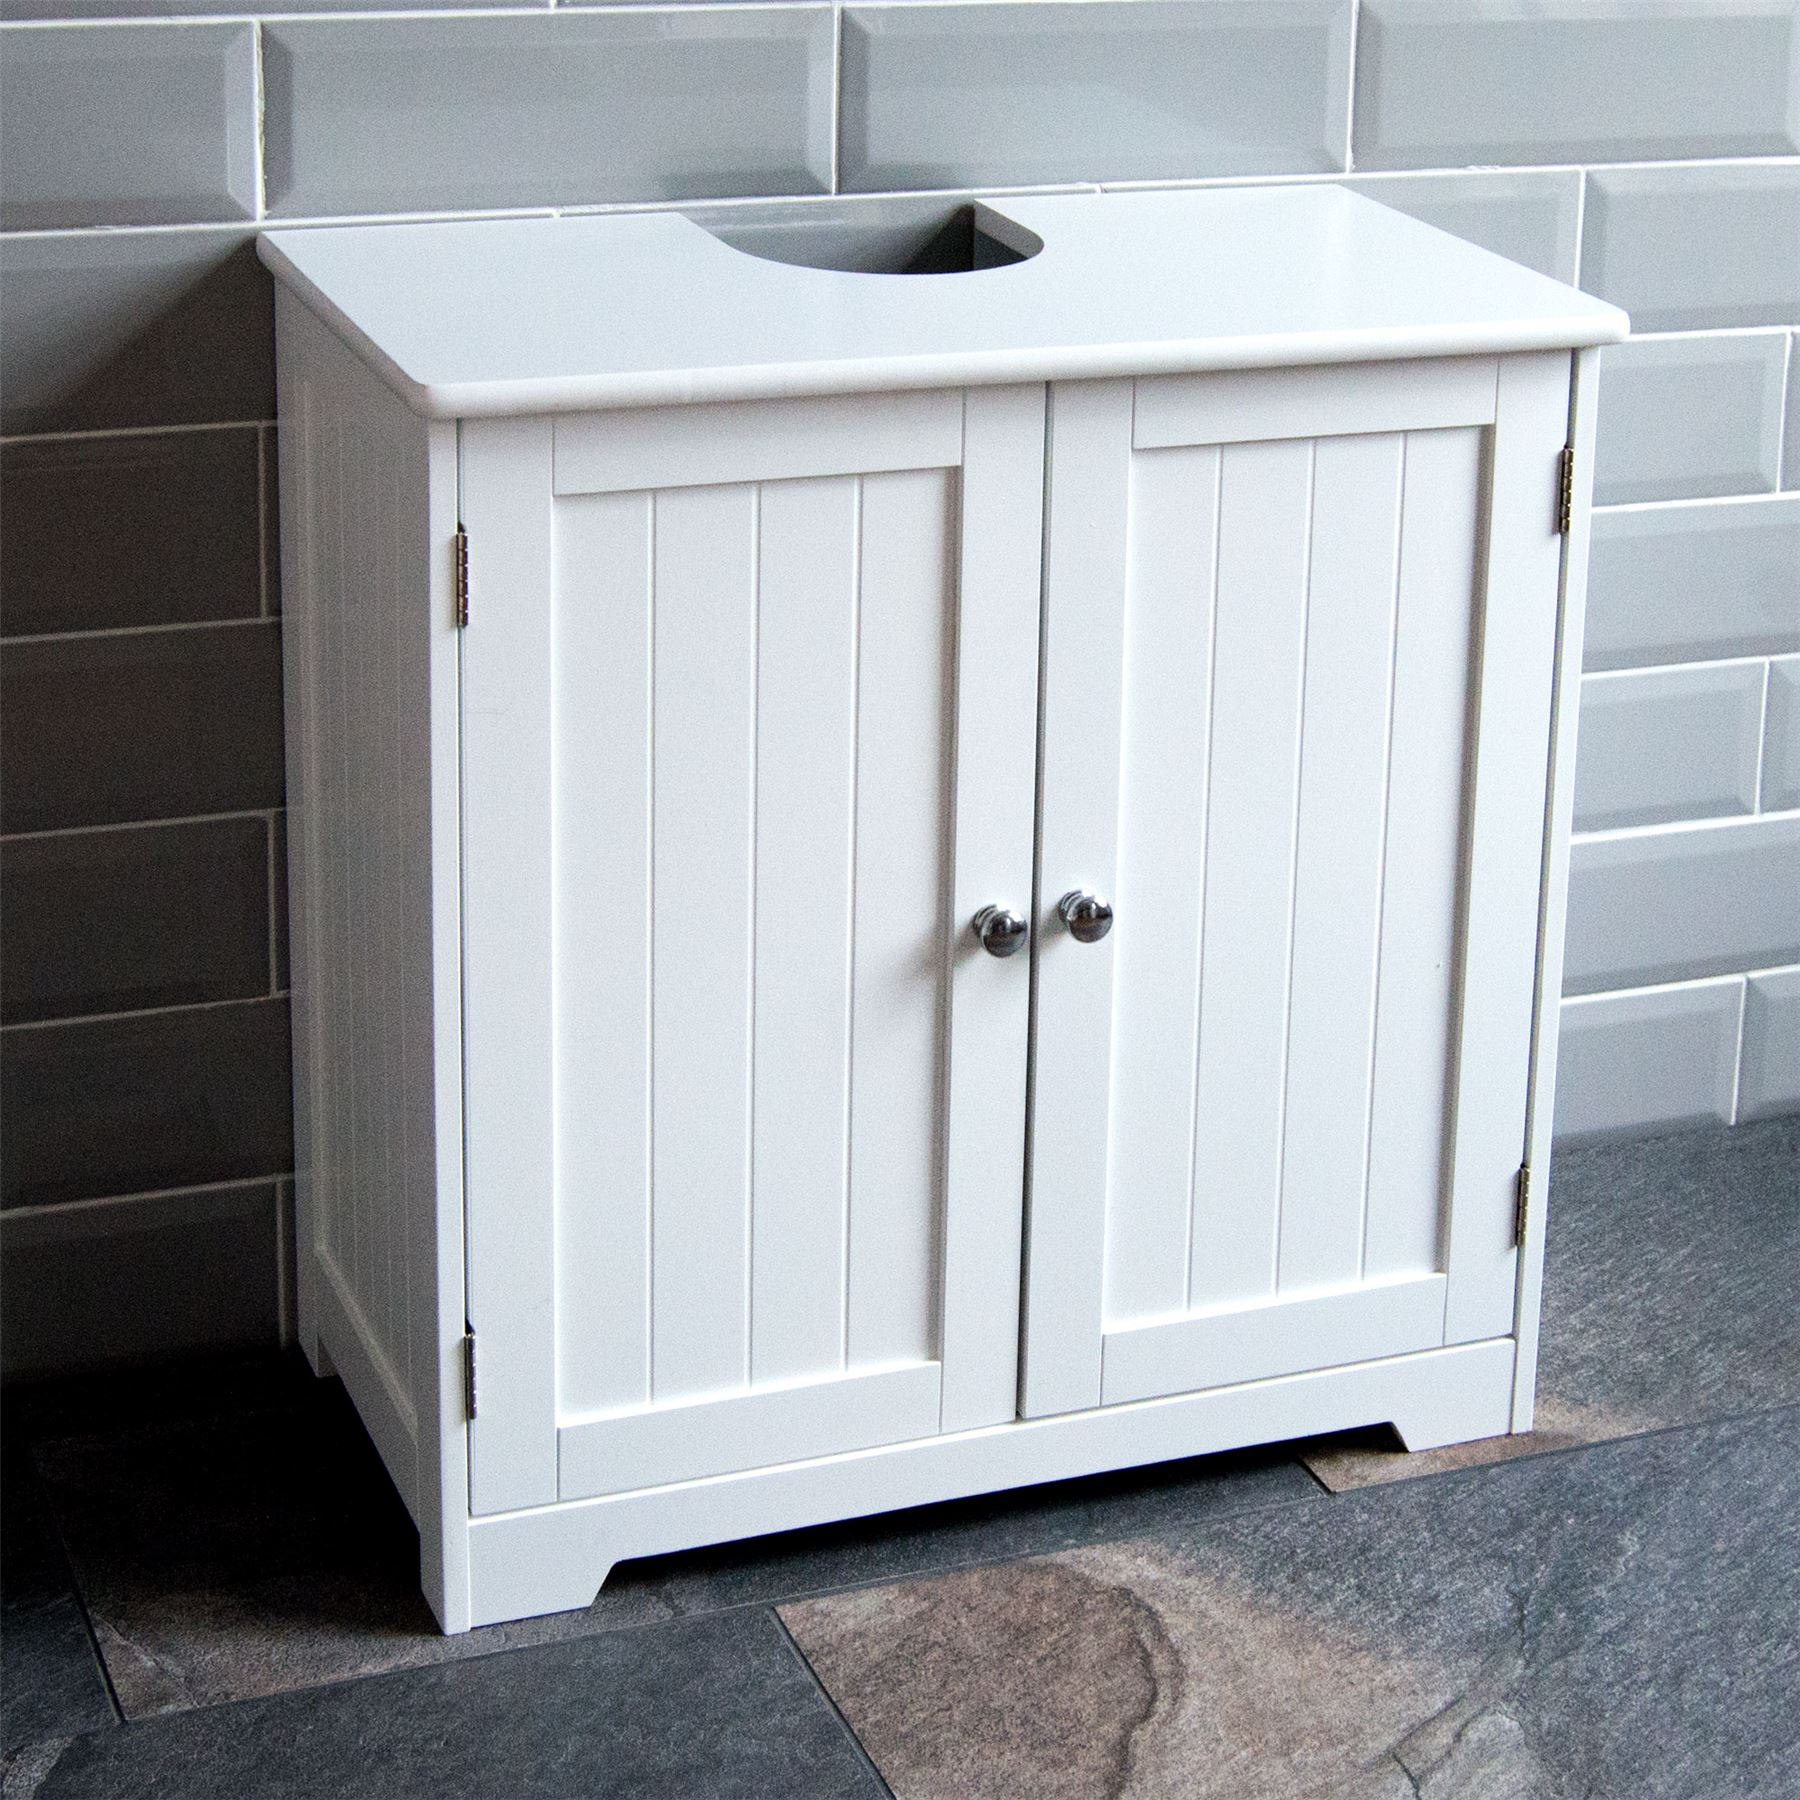 Priano Bathroom Sink Cabinet Under Basin Unit Cupboard ...